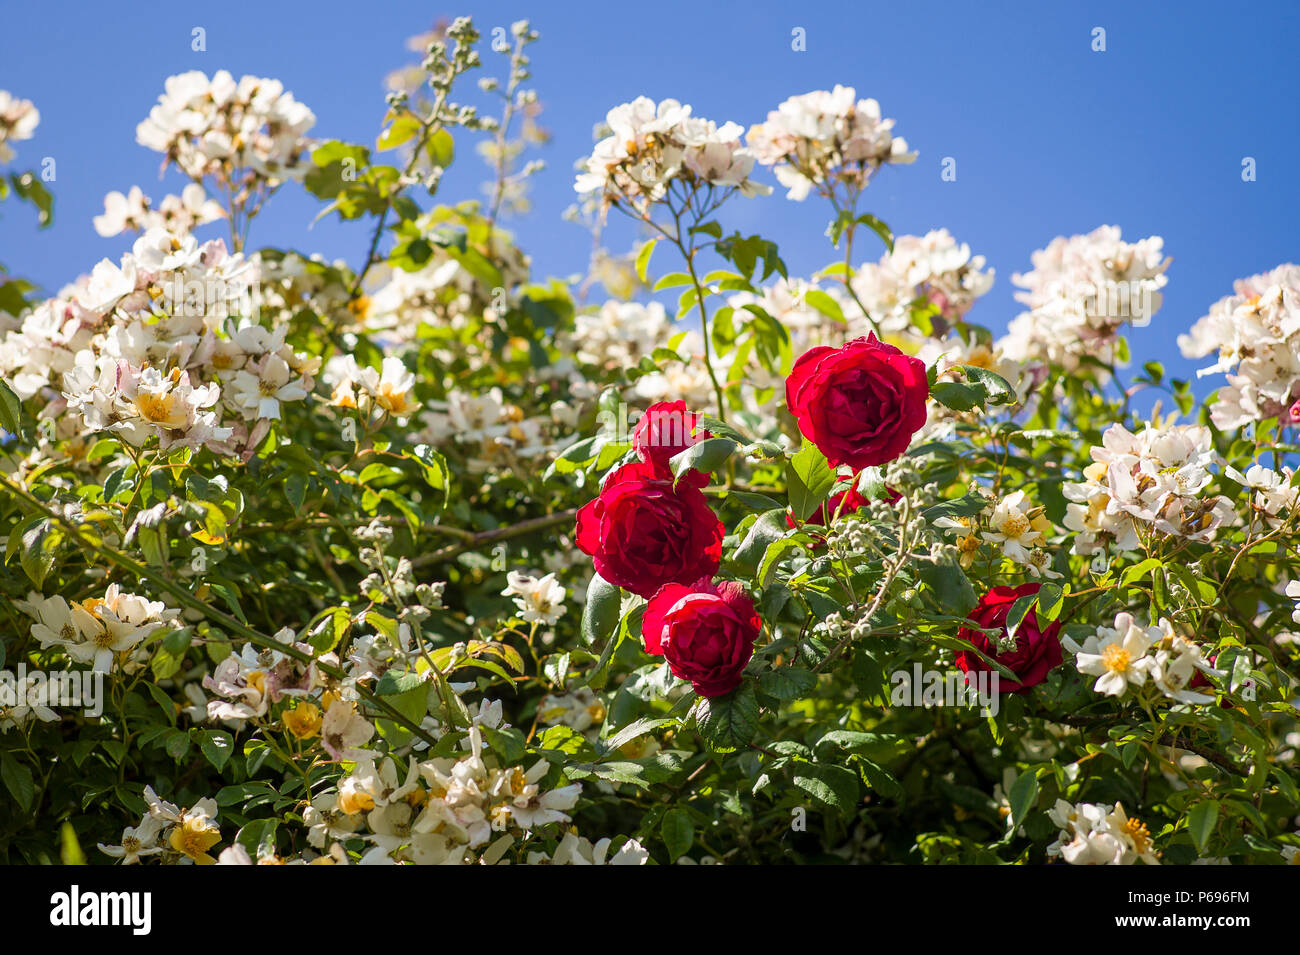 A group of roses Danse de Feu succeed in climbing through a rampant climibing rose in UK - Stock Image